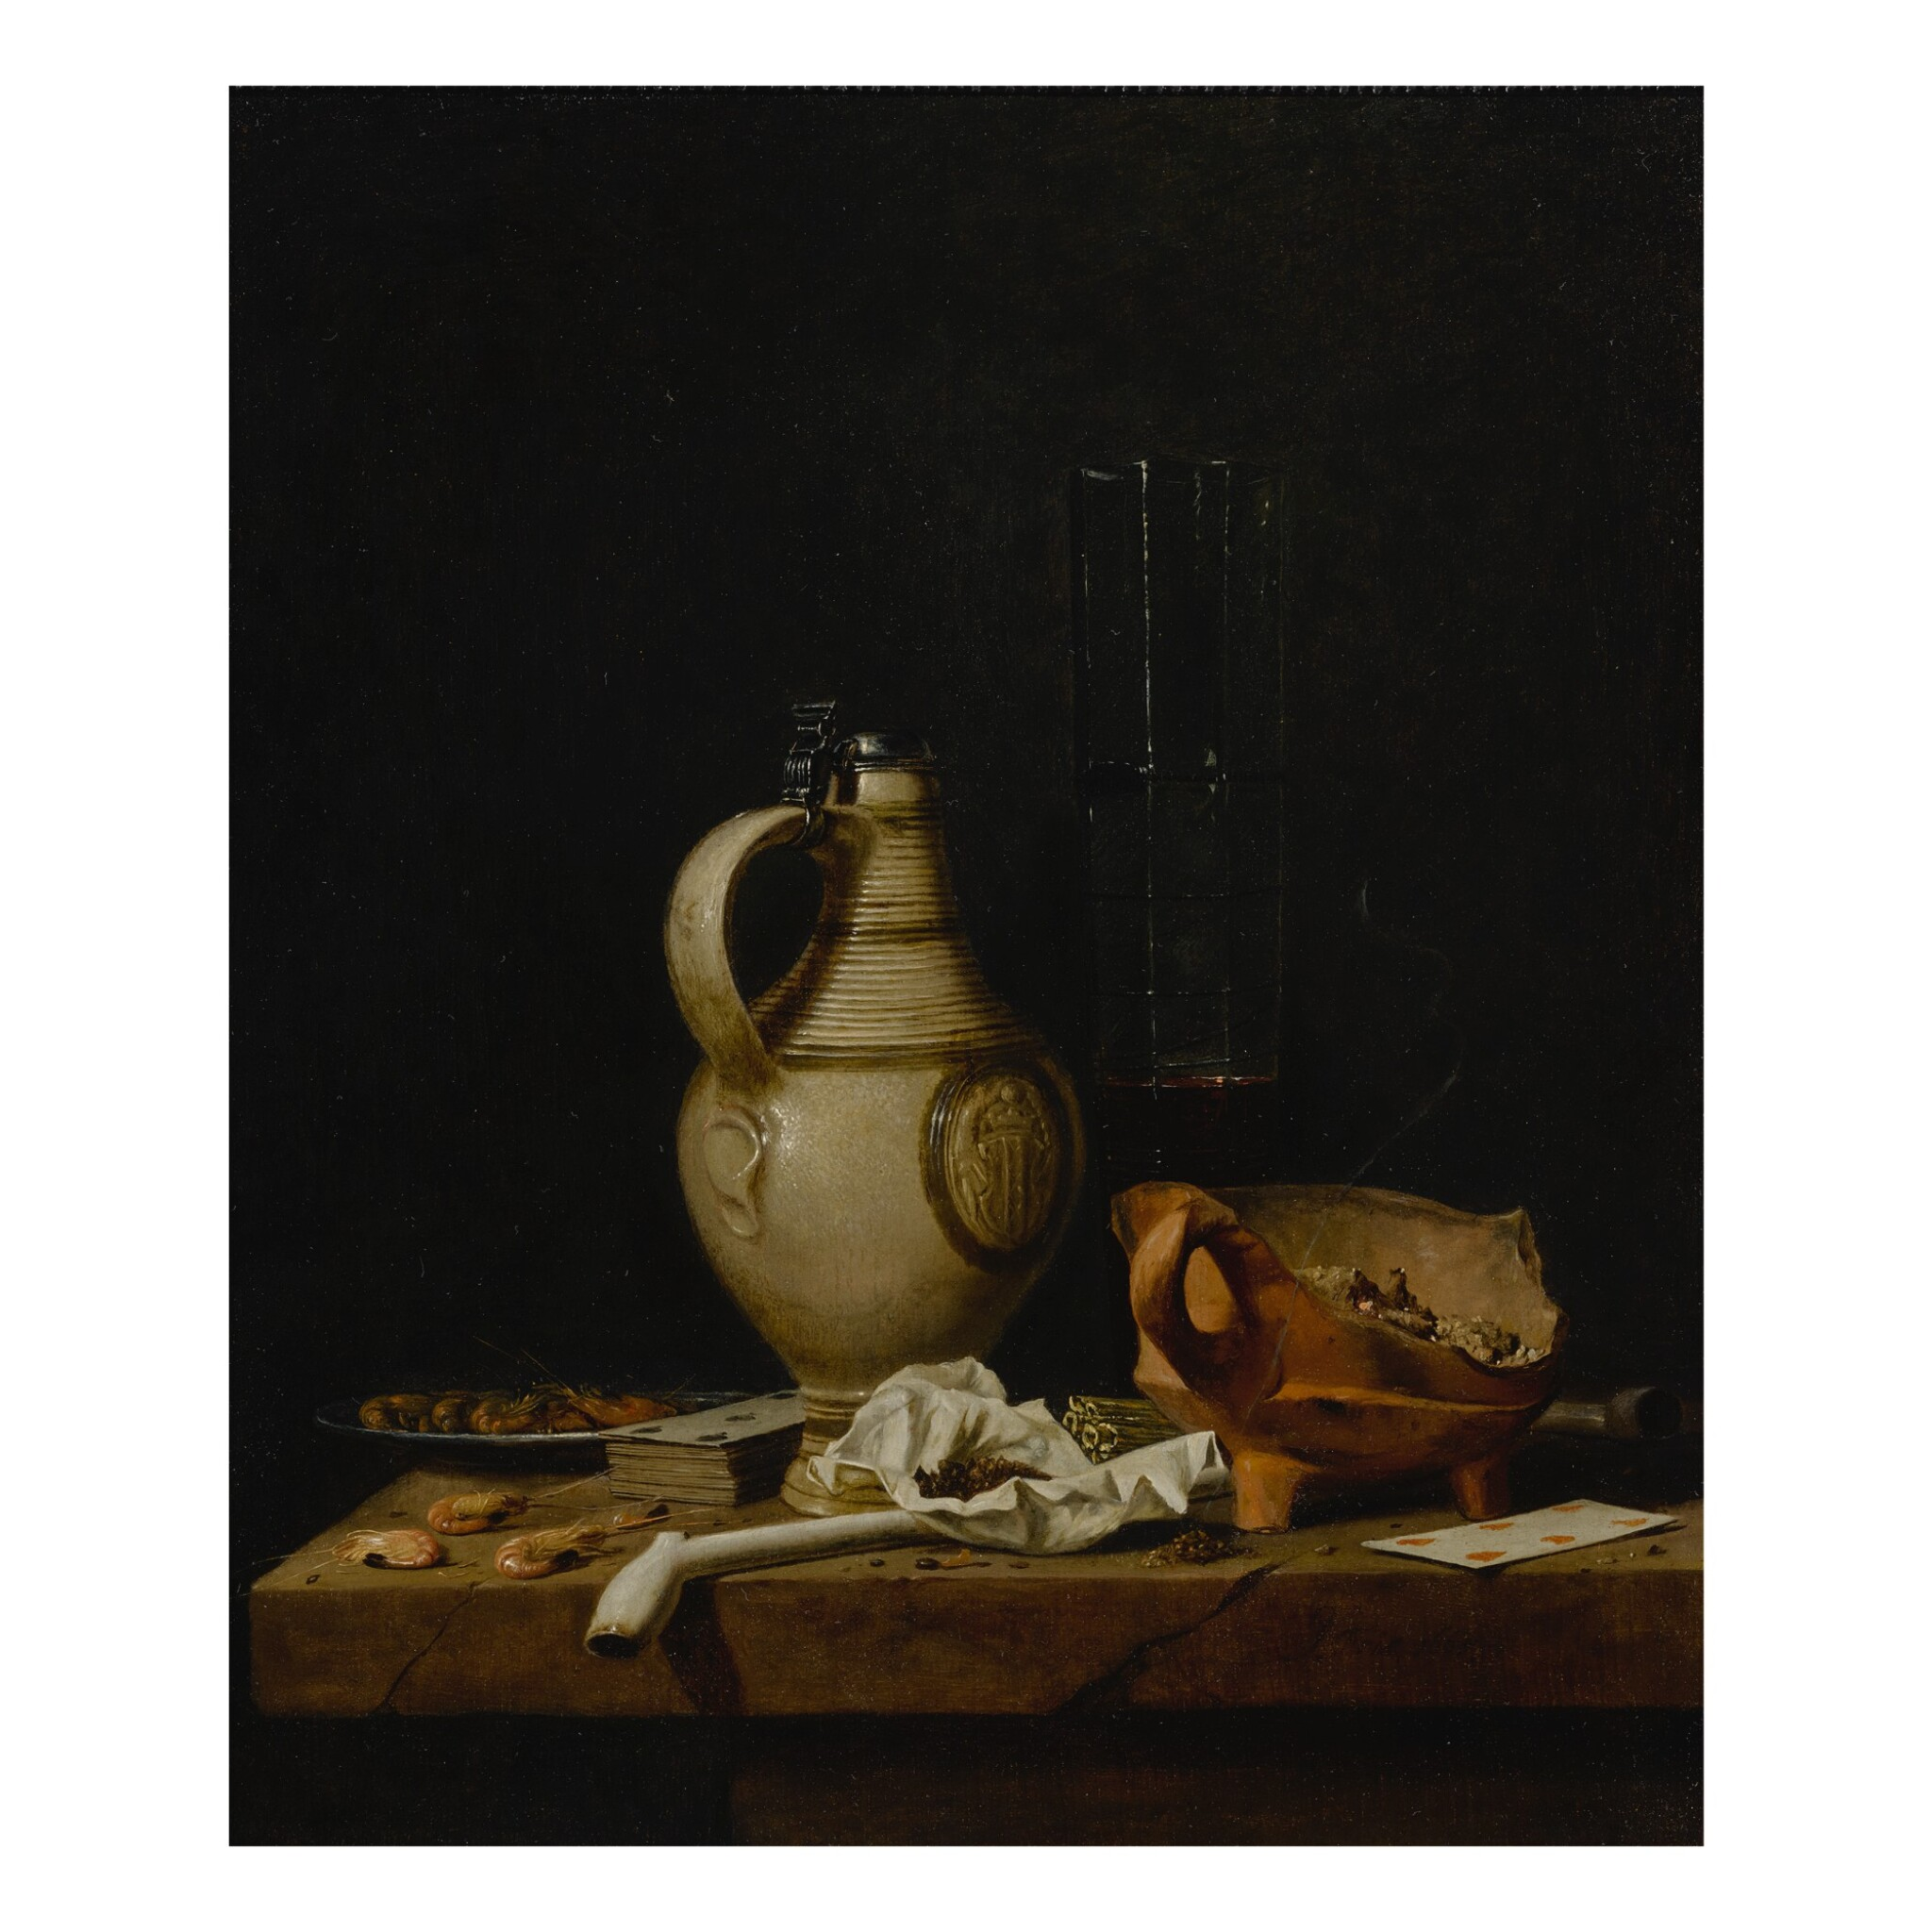 A still life with a stoneware jug, a glass of beer, playing cards and smokers' requisites